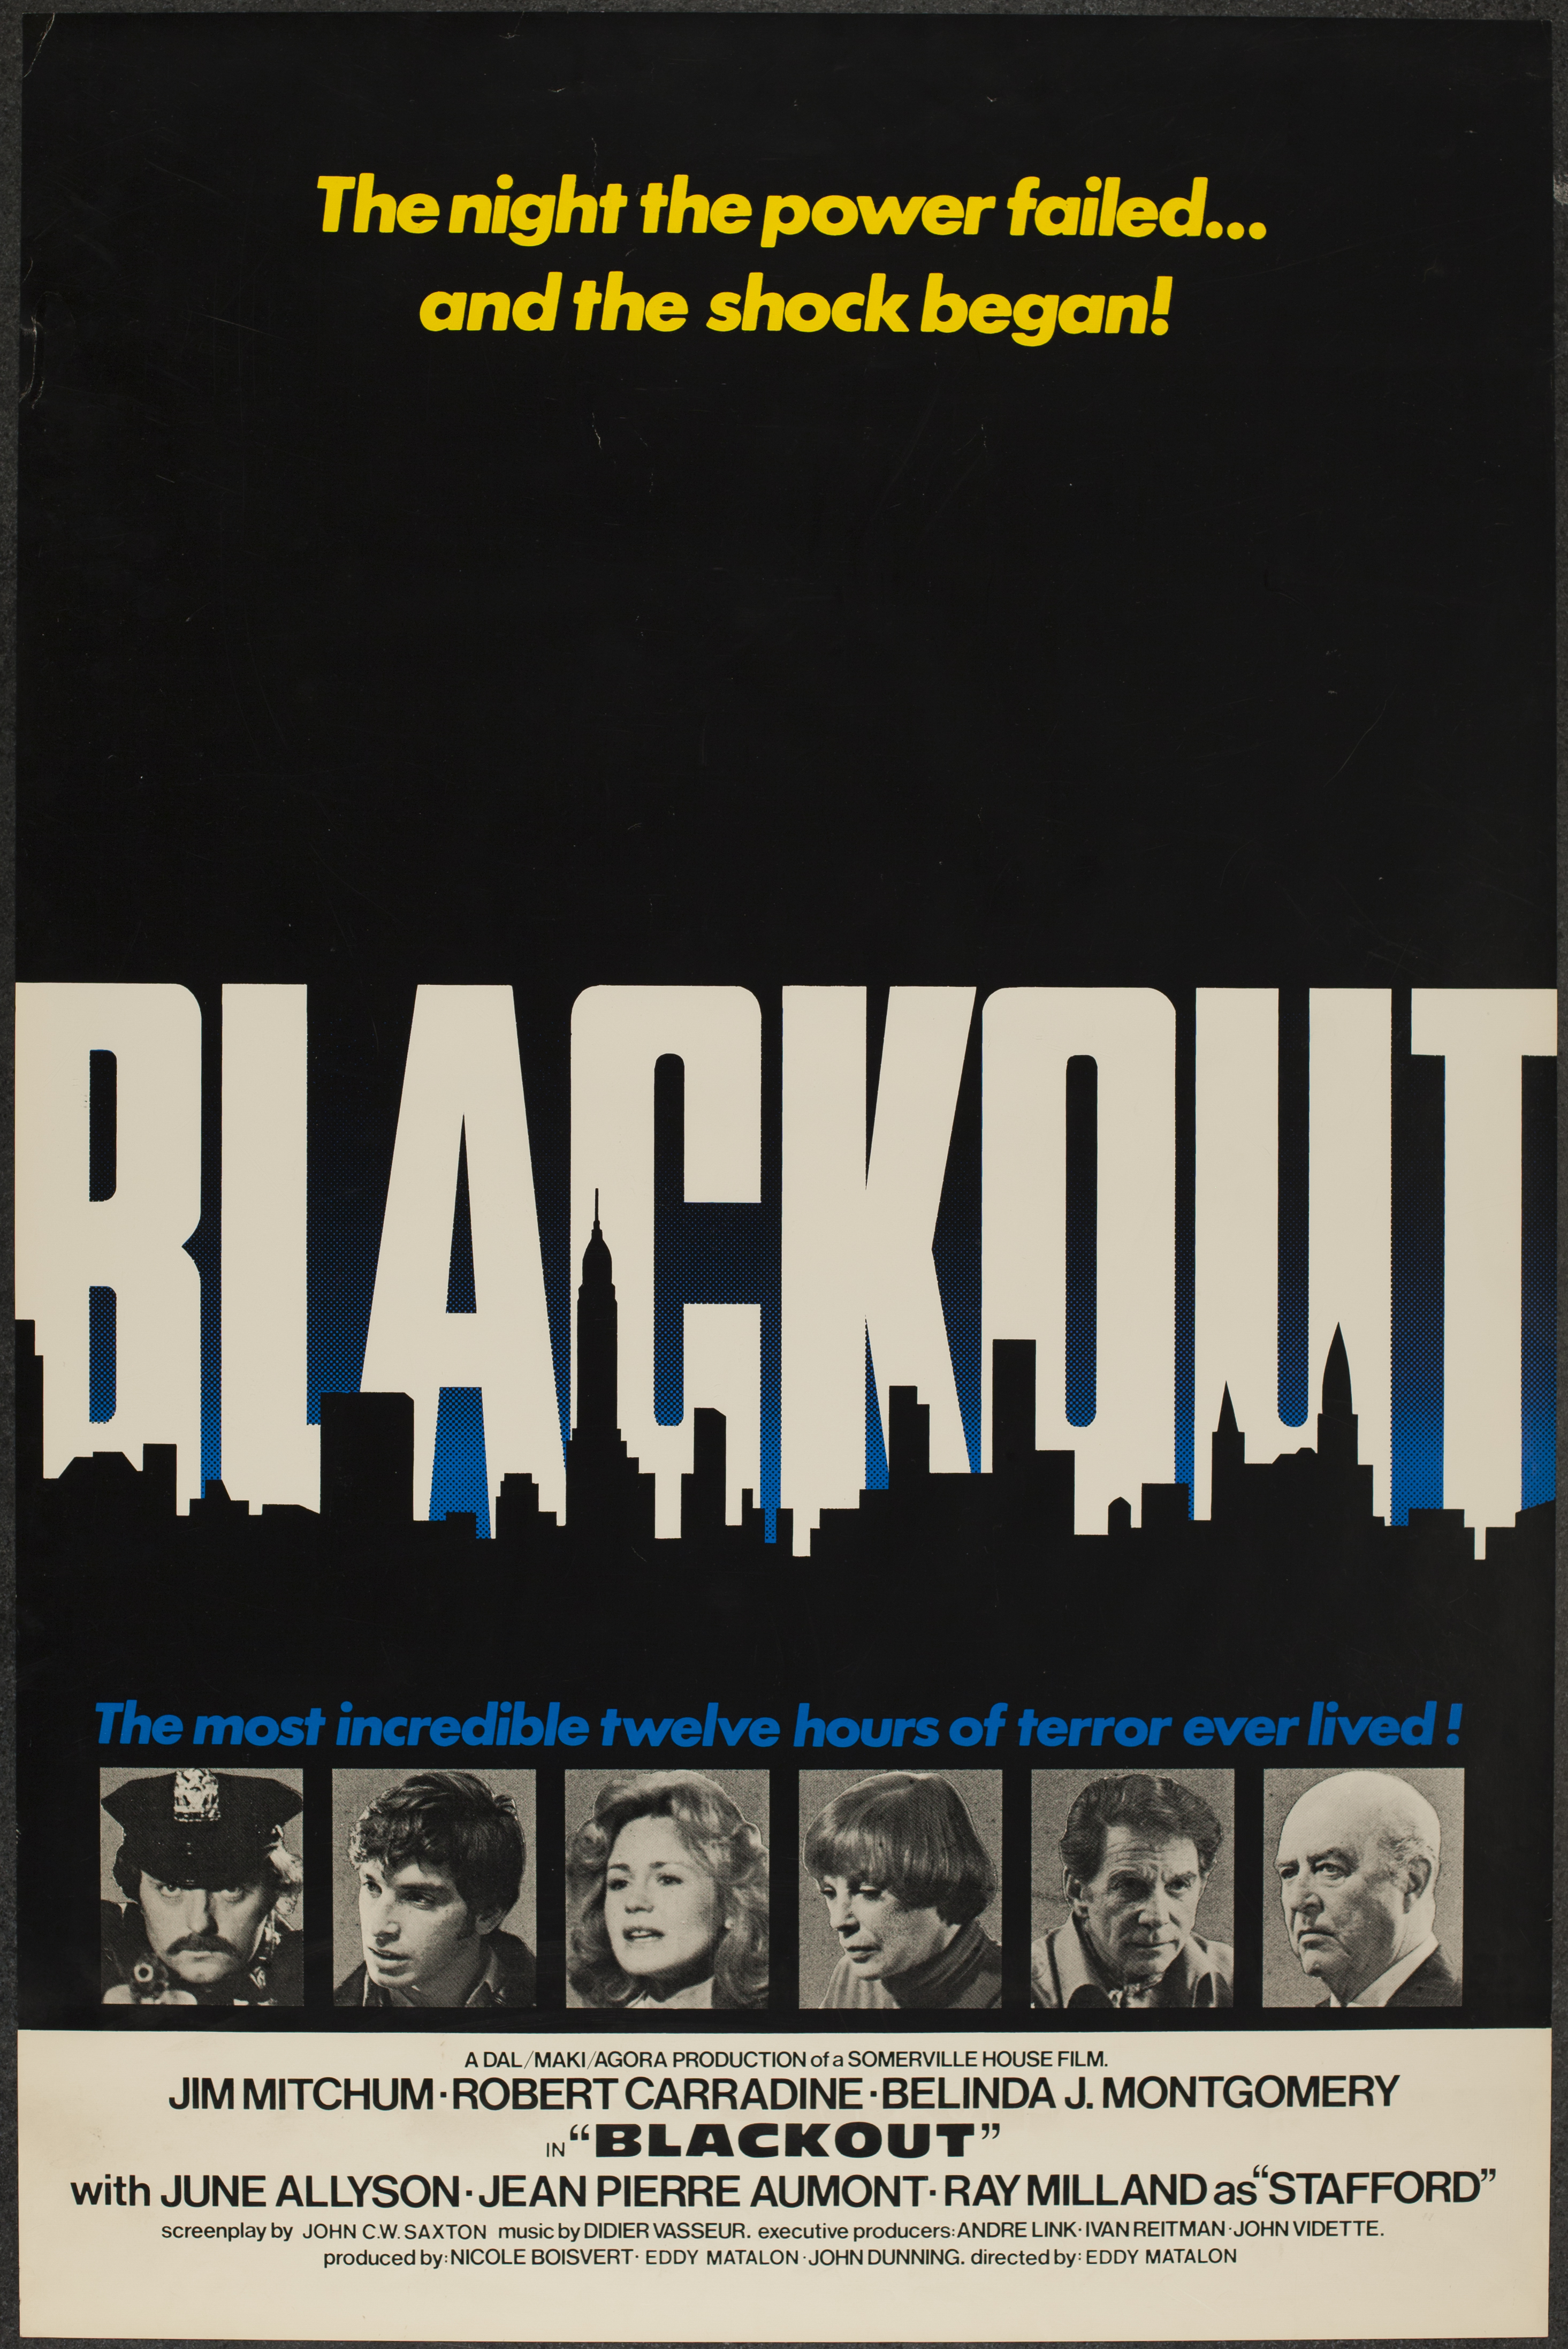 International cinema clips website 01 11 - Emblematic Of The Generic Ineptitude Of Many Tax Shelter Films Blackout 1978 About New York City Thugs On A Rampage During A Power Failure